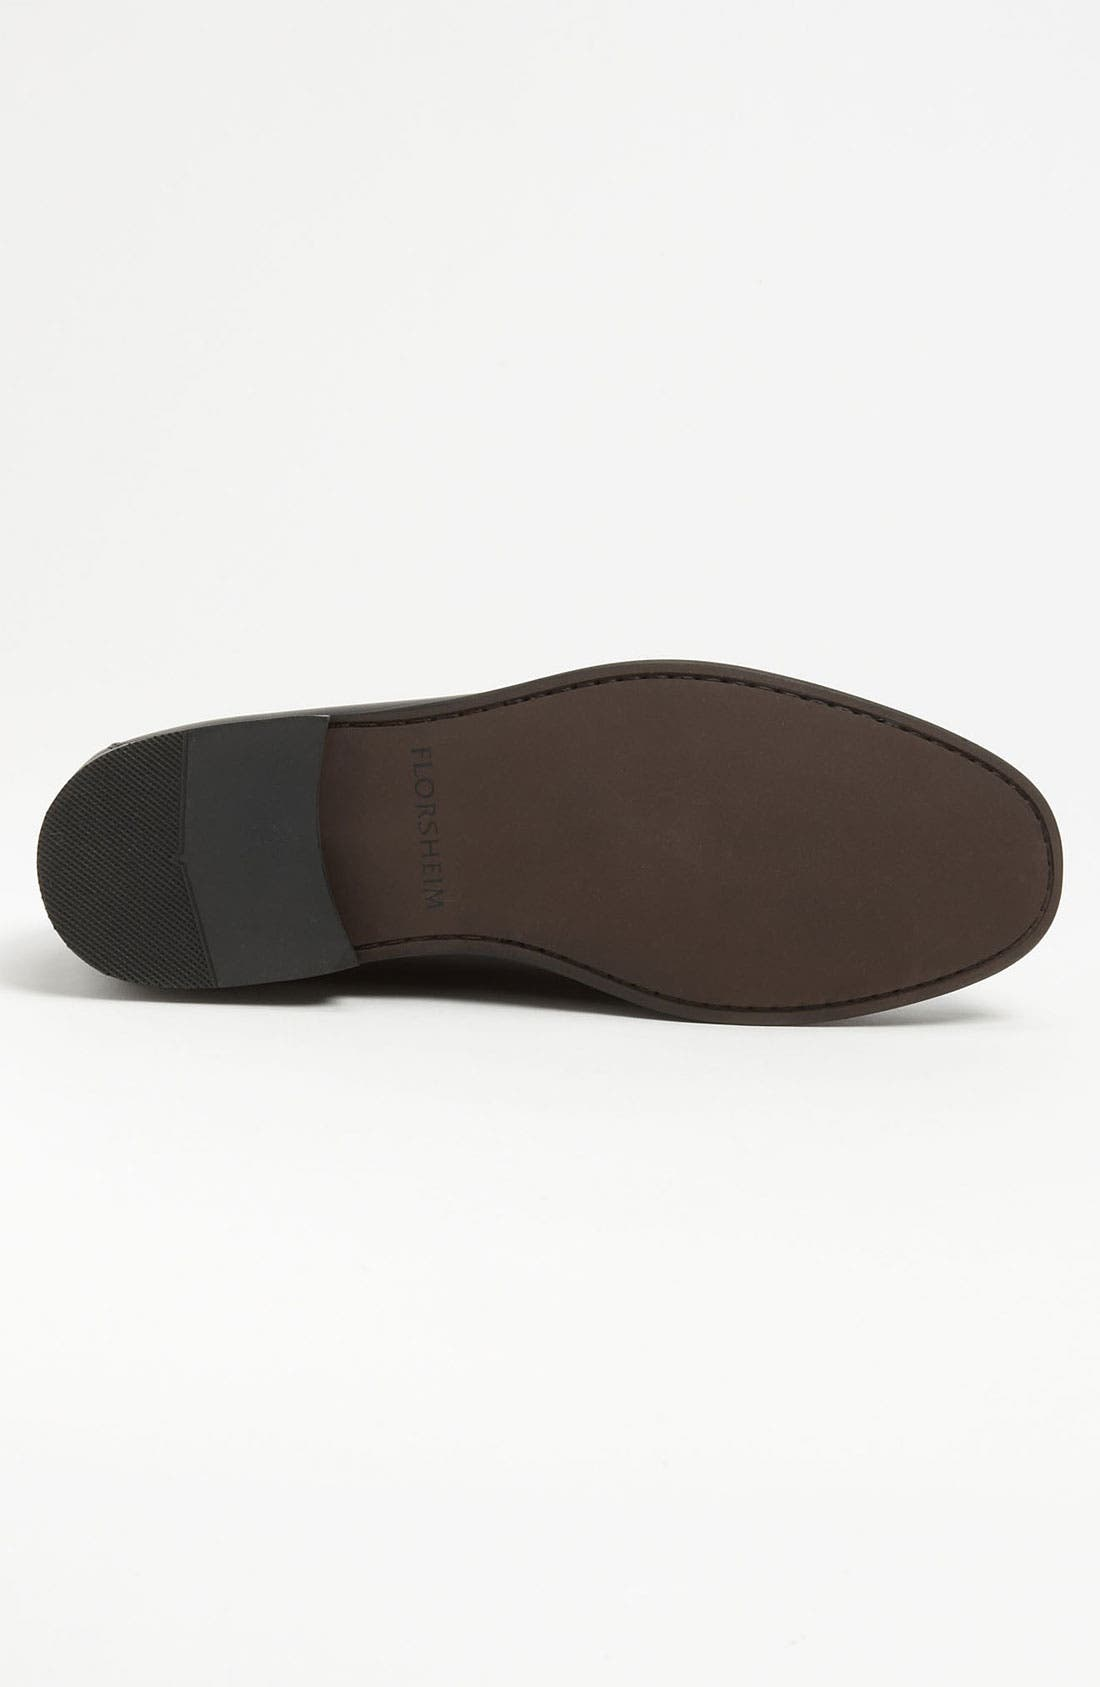 'Sarasota' Bit Loafer,                             Alternate thumbnail 4, color,                             Black Smooth